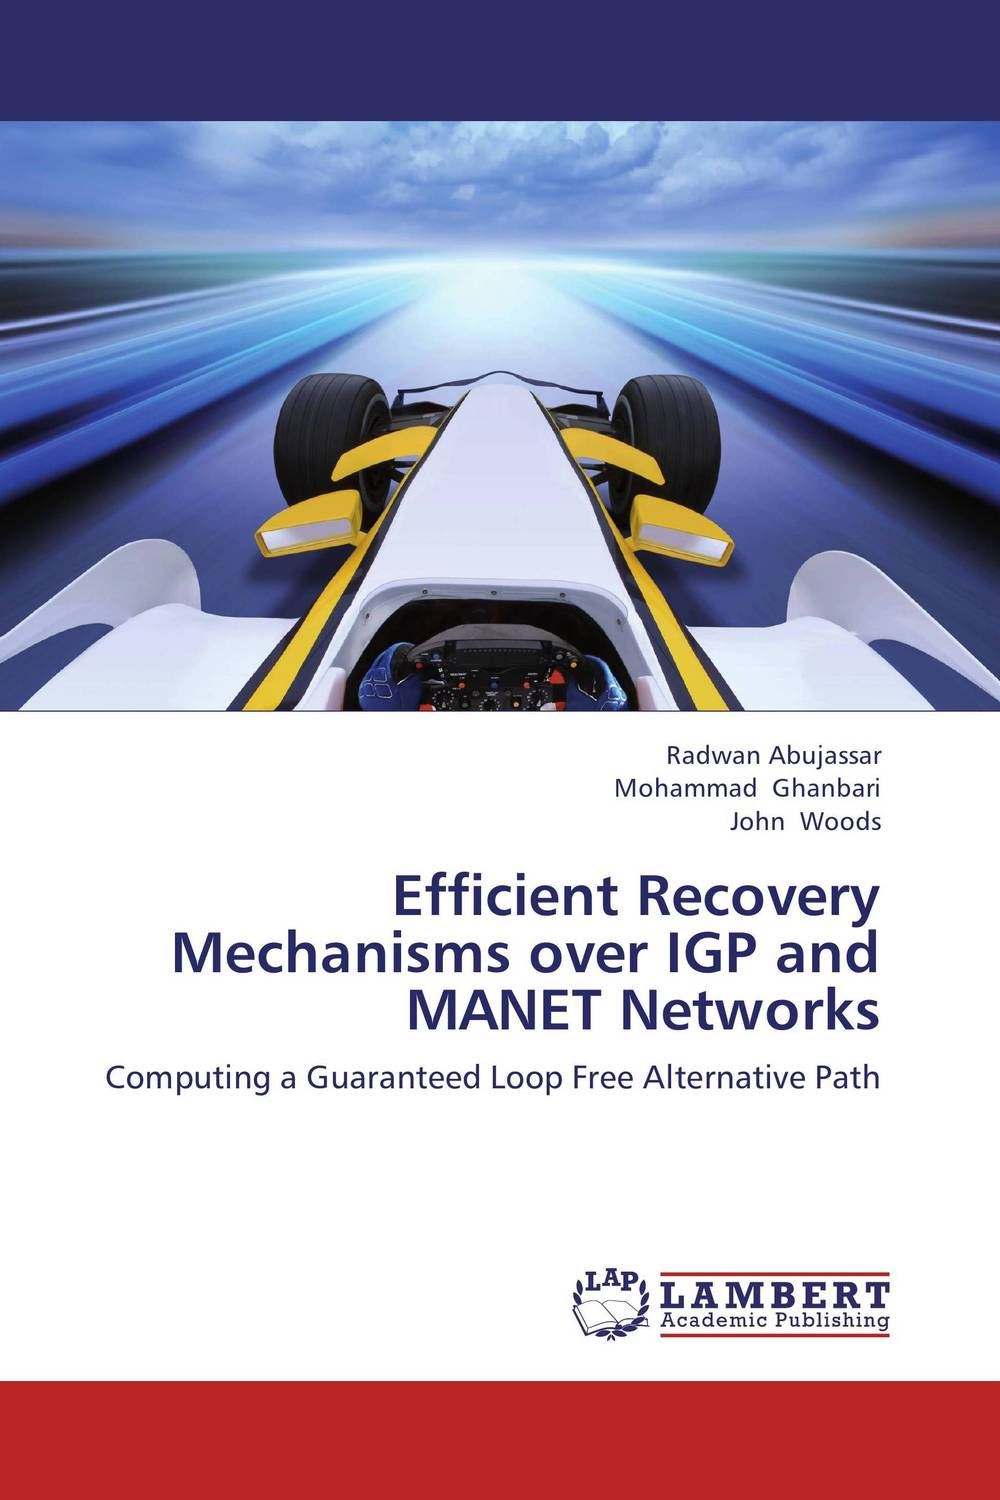 Efficient Recovery Mechanisms over IGP and MANET Networks network recovery